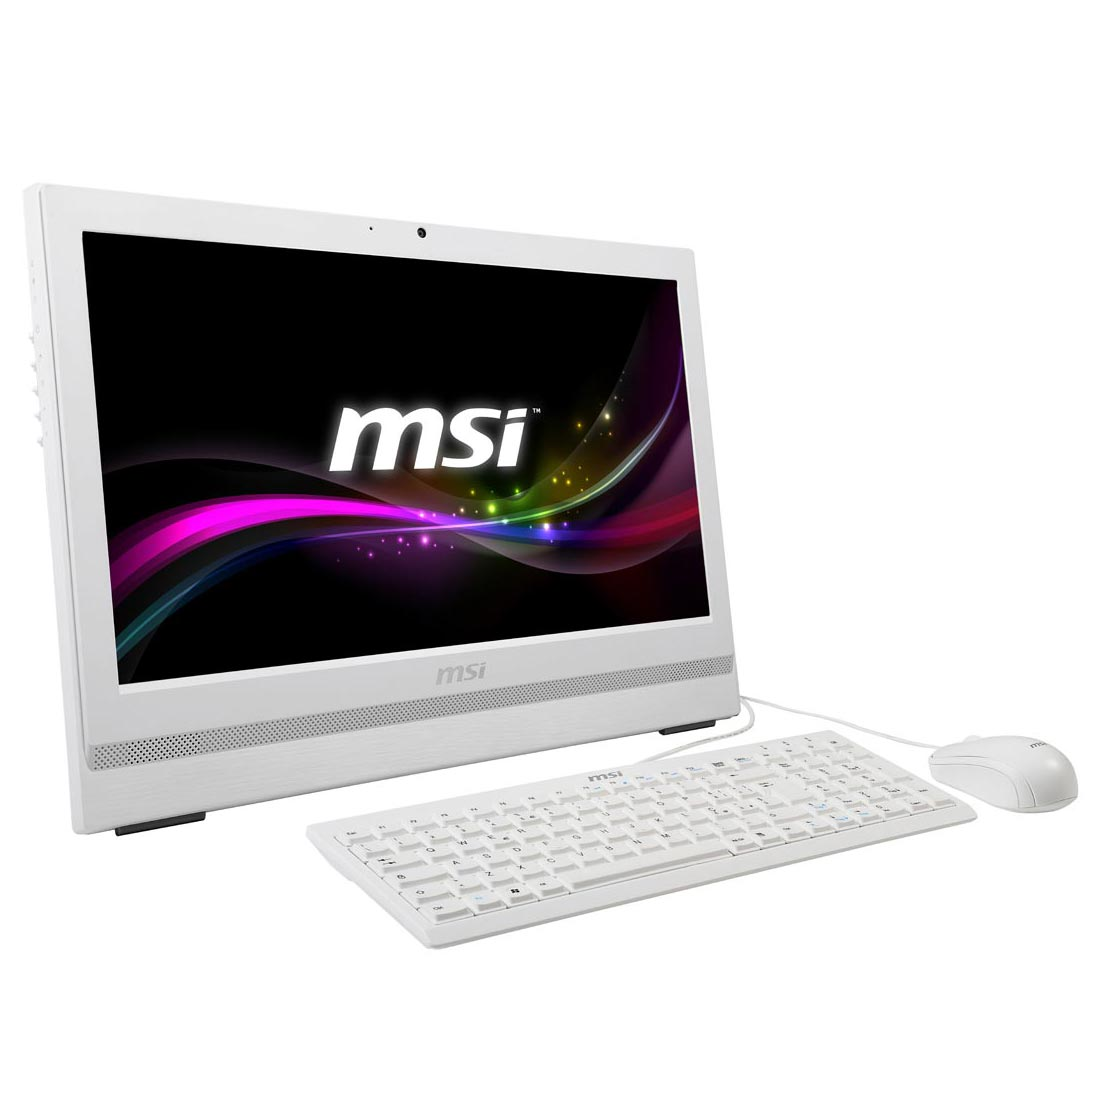 msi ap200 208xeu blanc pc de bureau msi sur ldlc. Black Bedroom Furniture Sets. Home Design Ideas